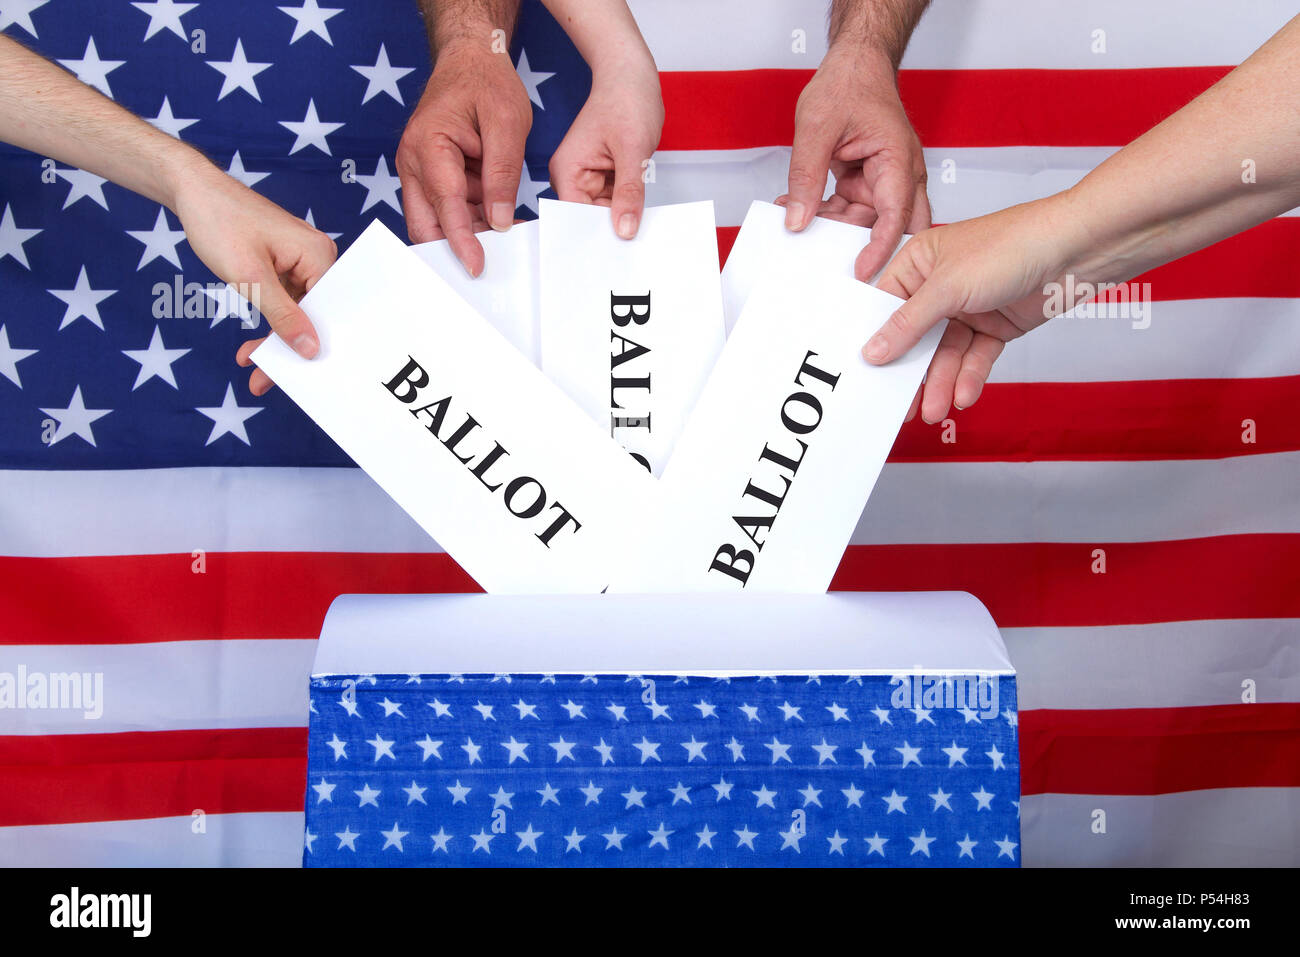 hands placing ballots in a voting box, American flag in background. Anyone over the age of 18 on election day and a citizen of the United States is el - Stock Image